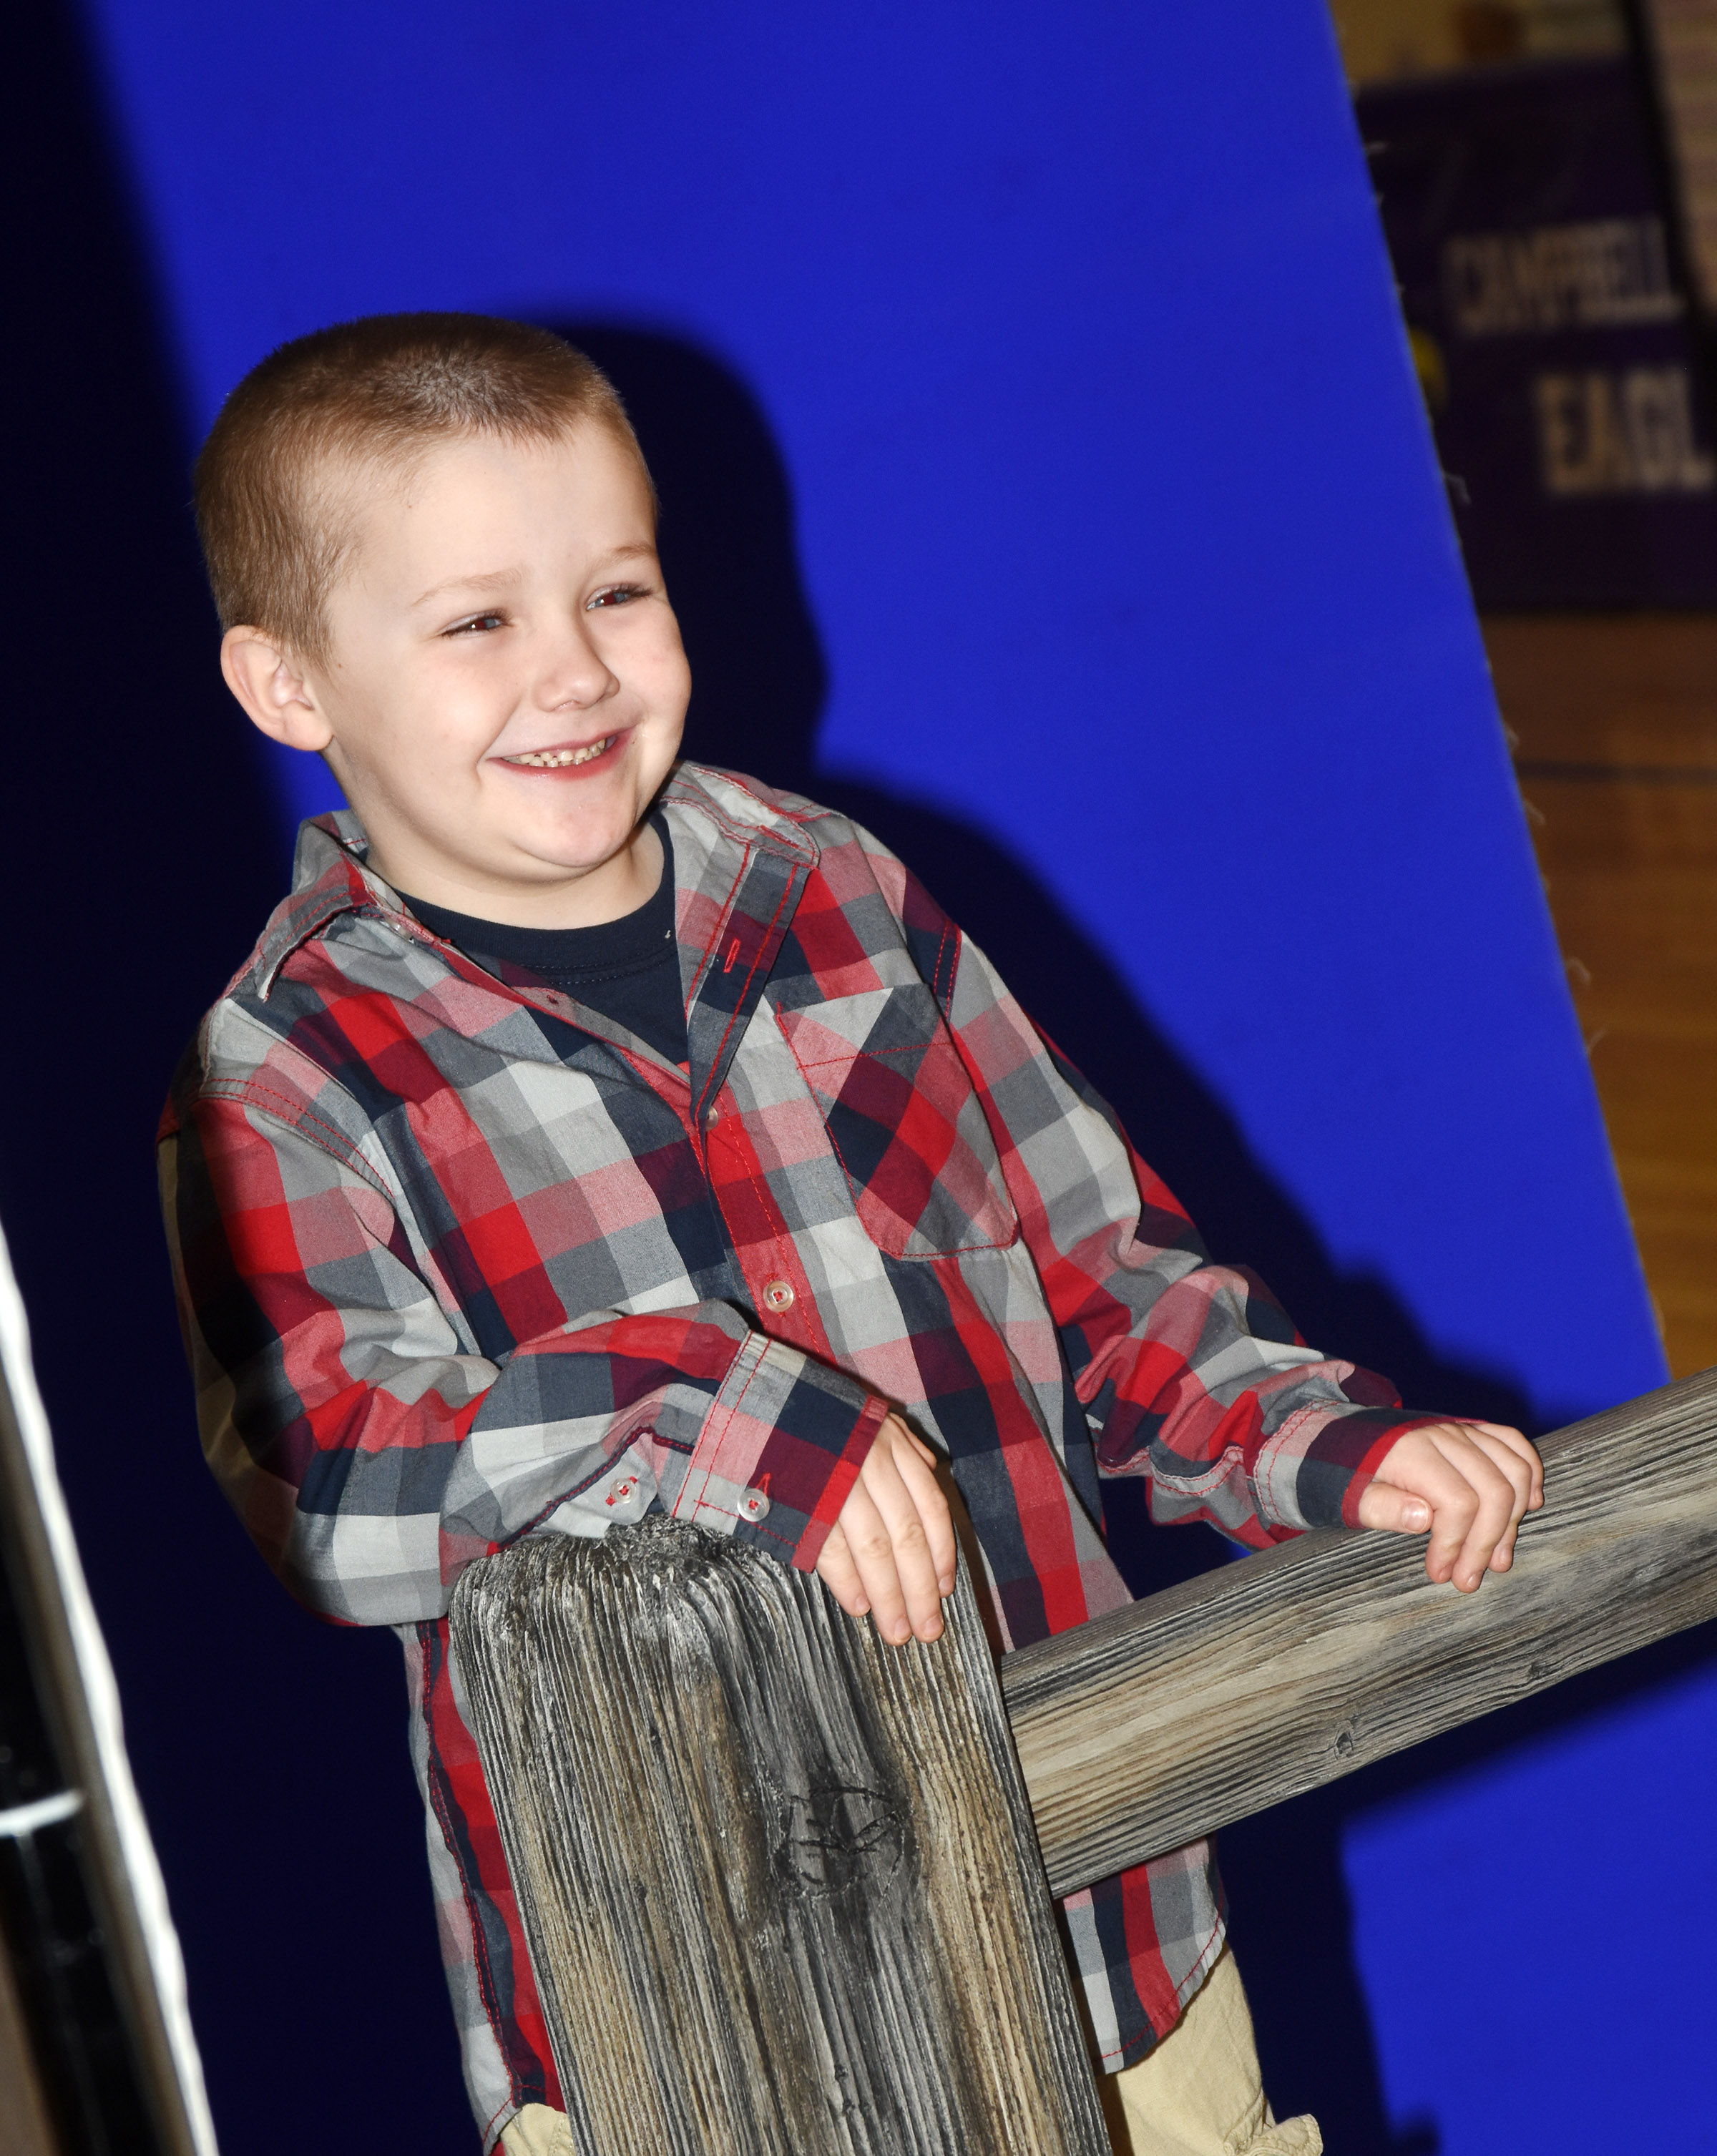 CES kindergartener Levi Dye takes a new school photo.